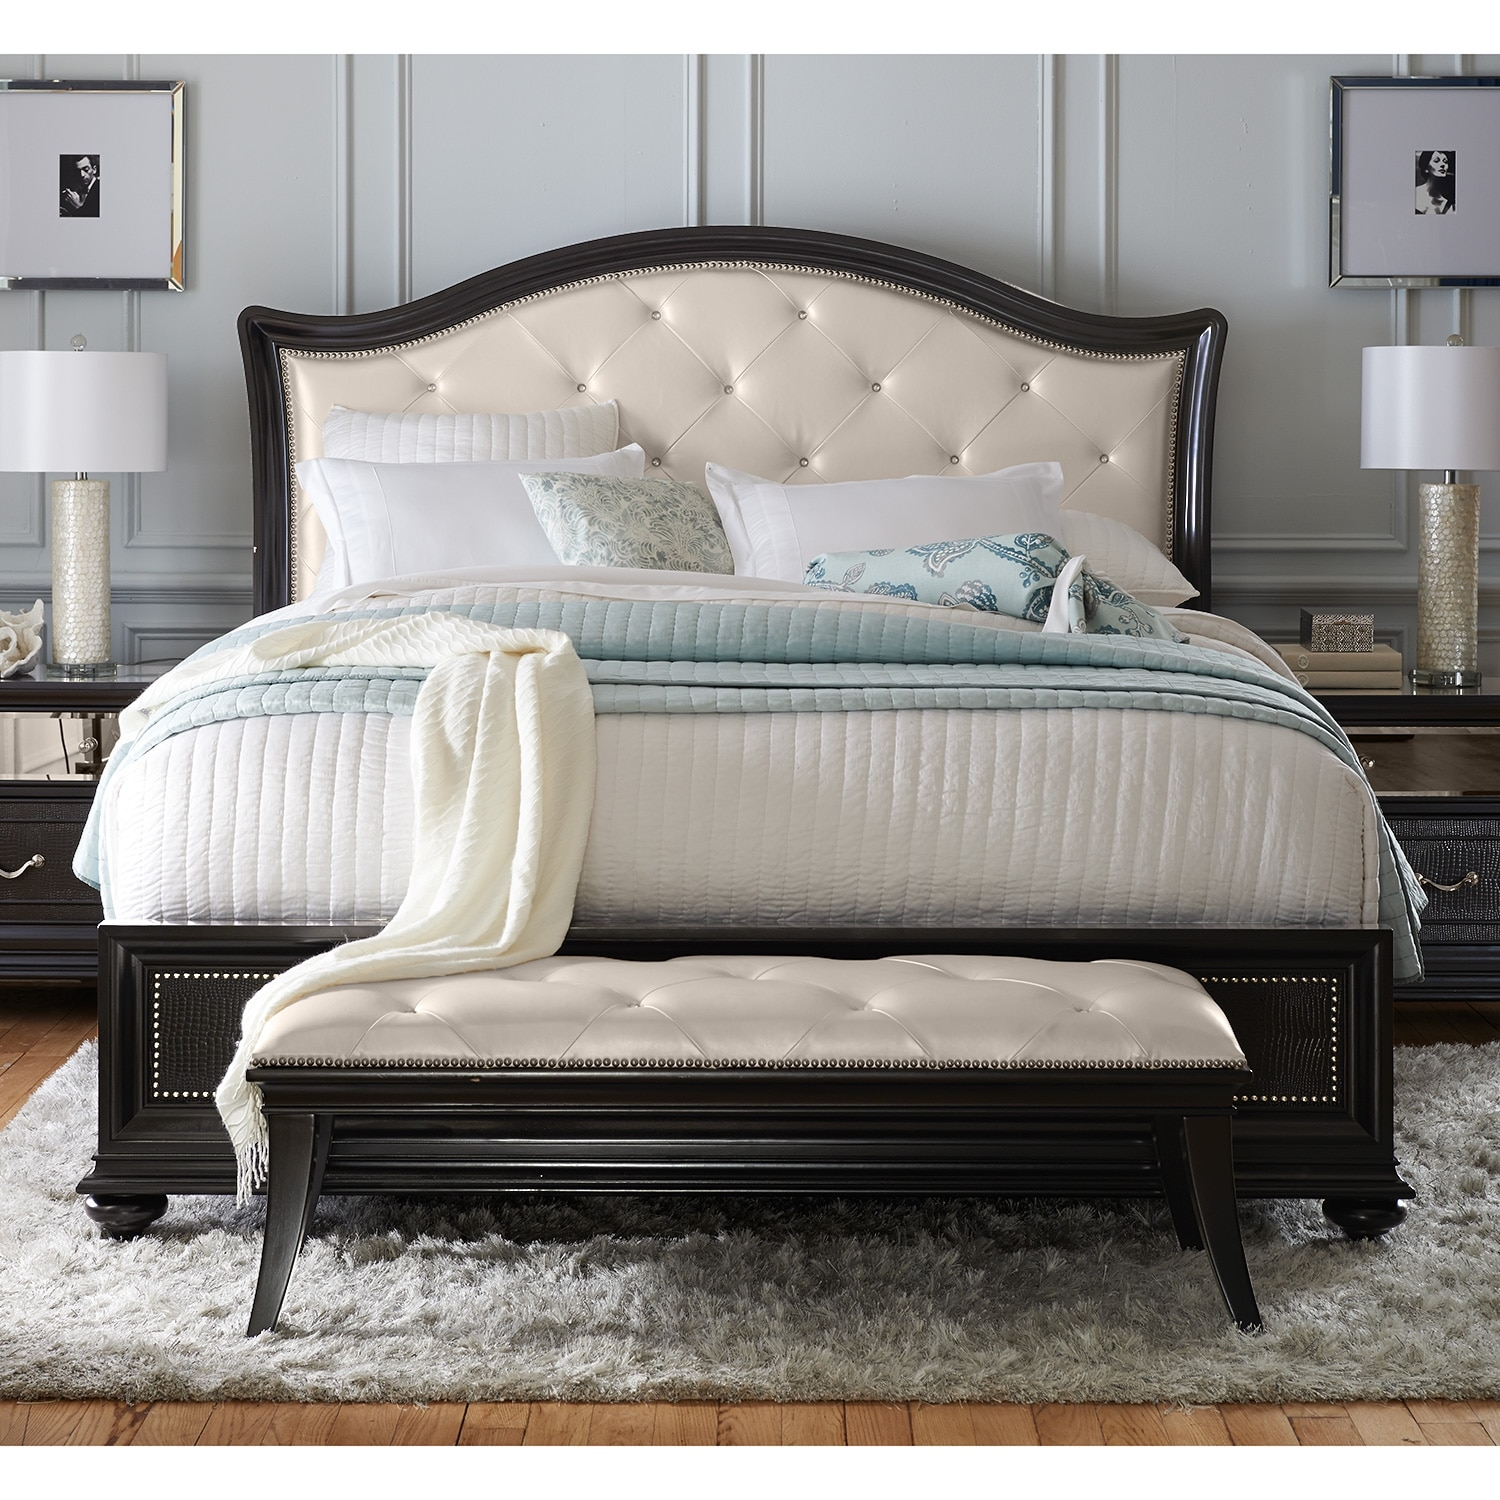 Marilyn queen bed value city furniture Queen bed and mattress